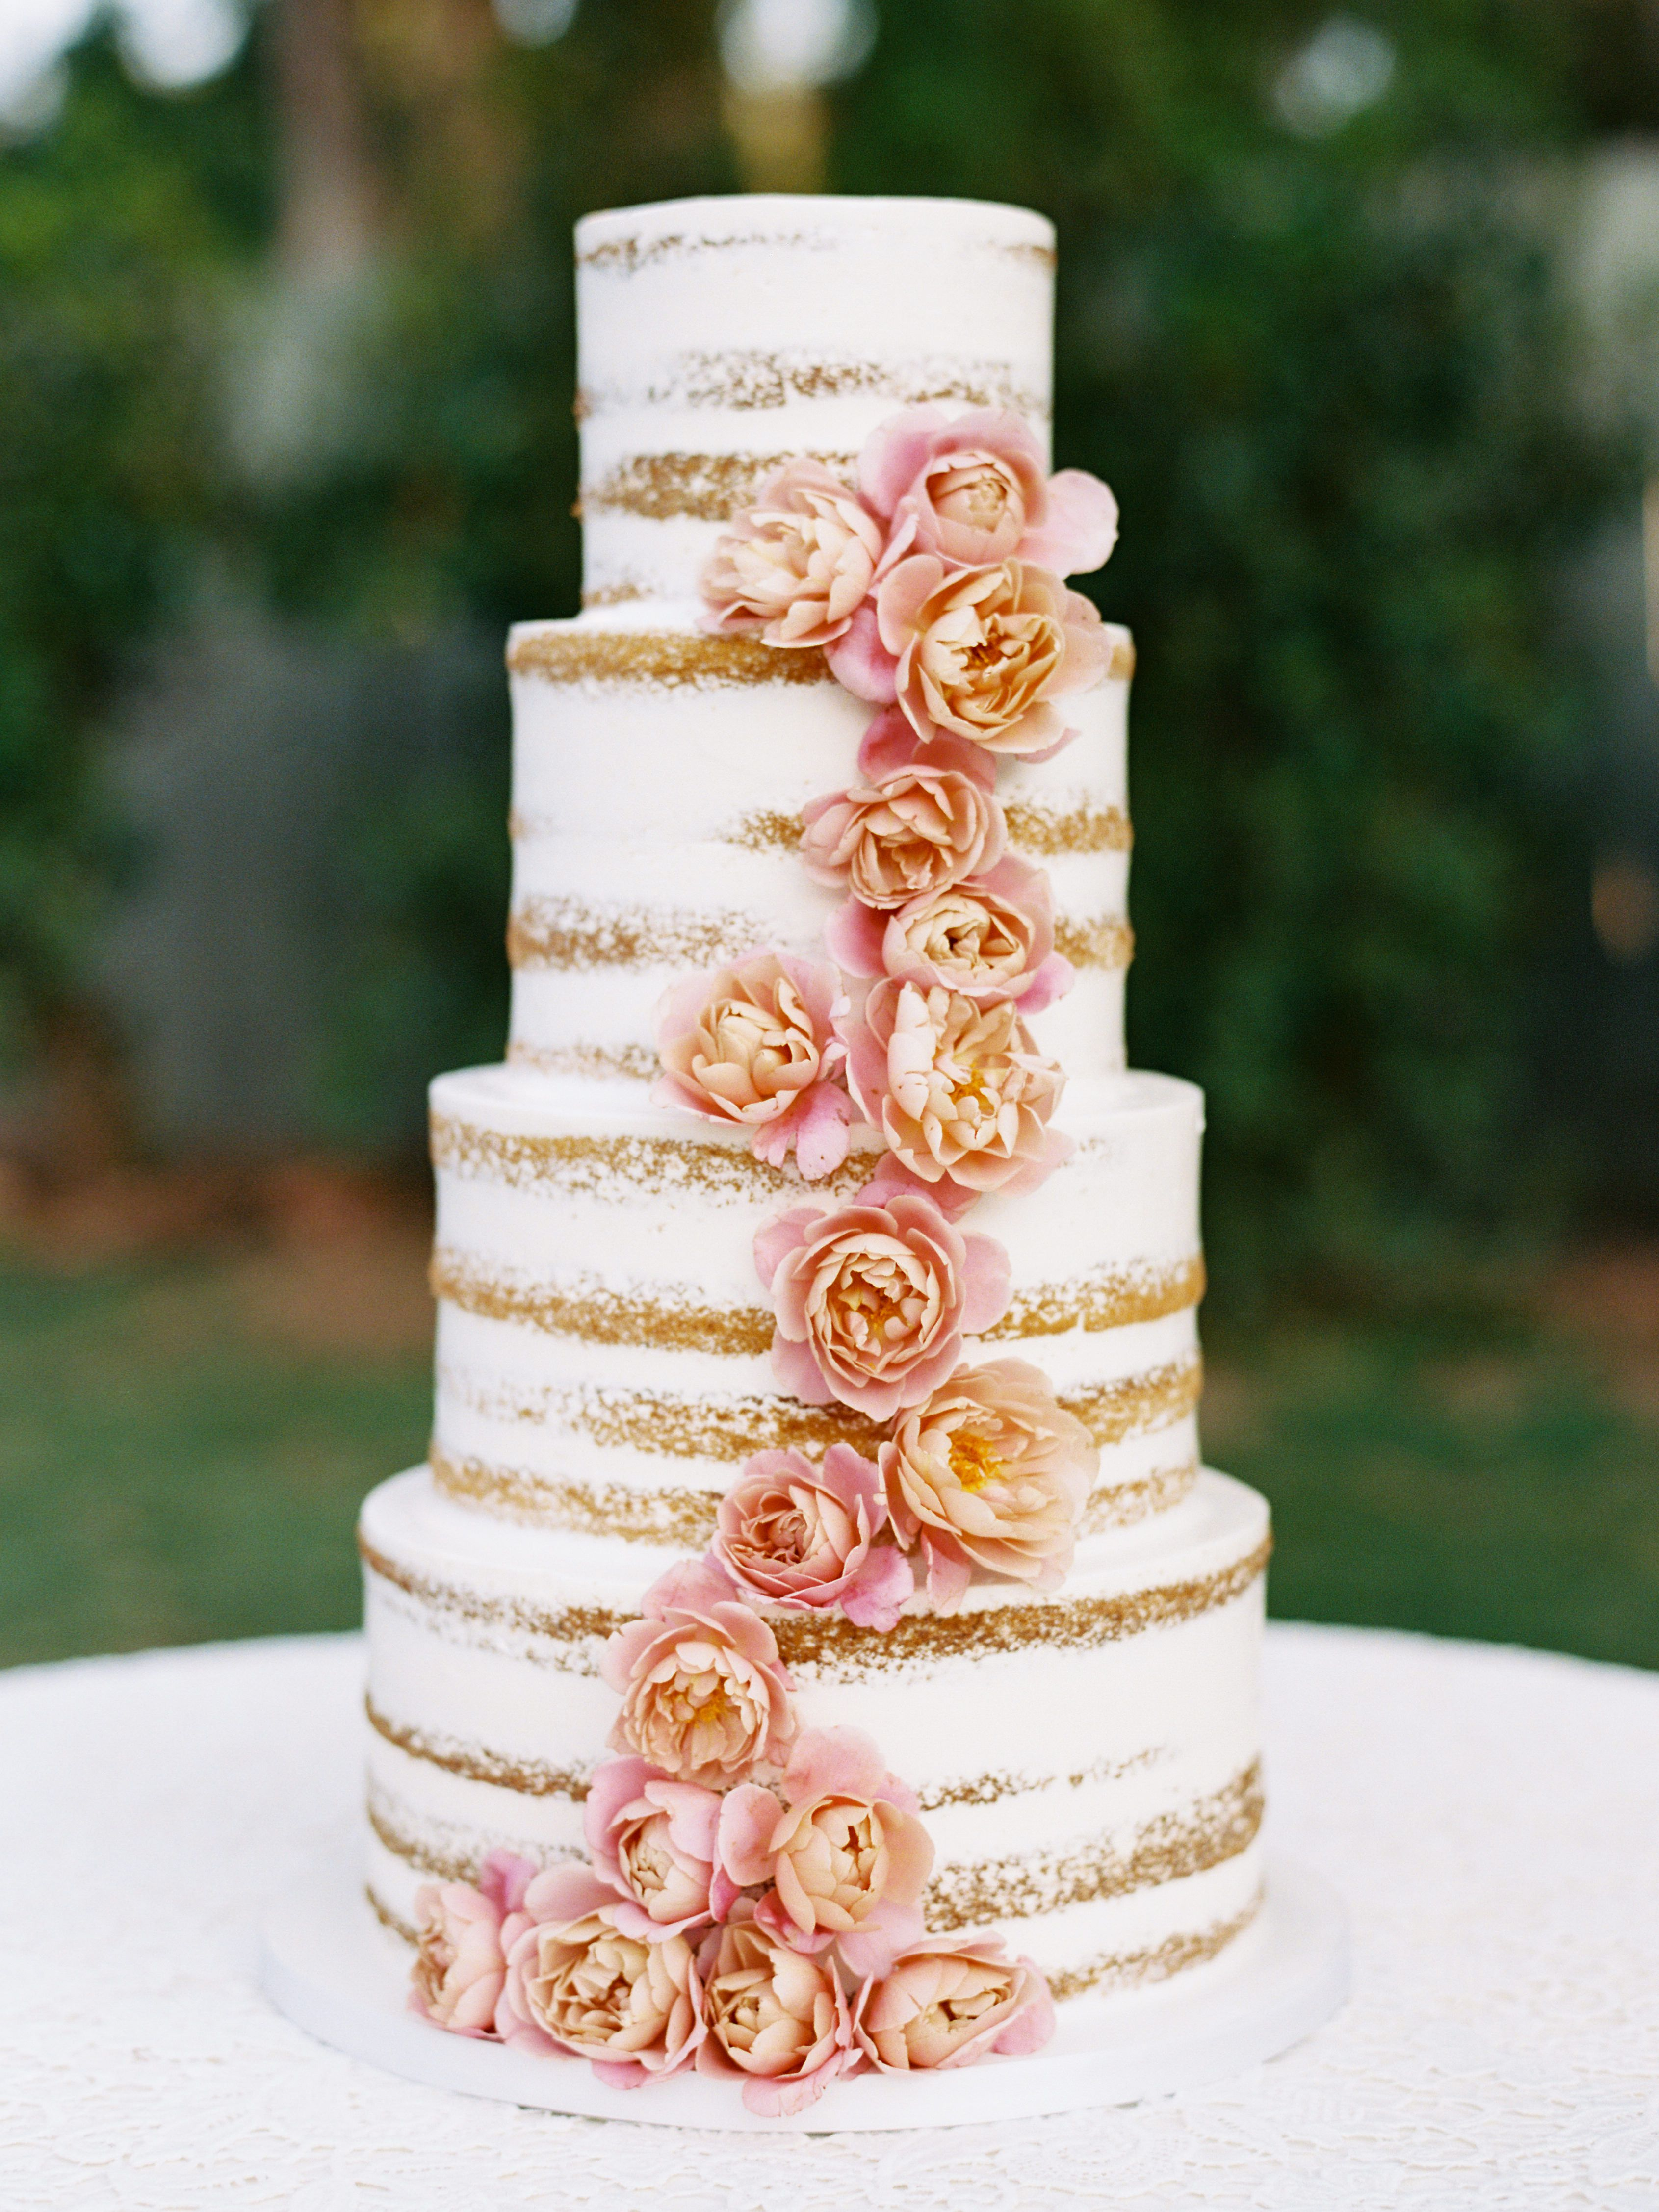 39 Naked Wedding Cakes